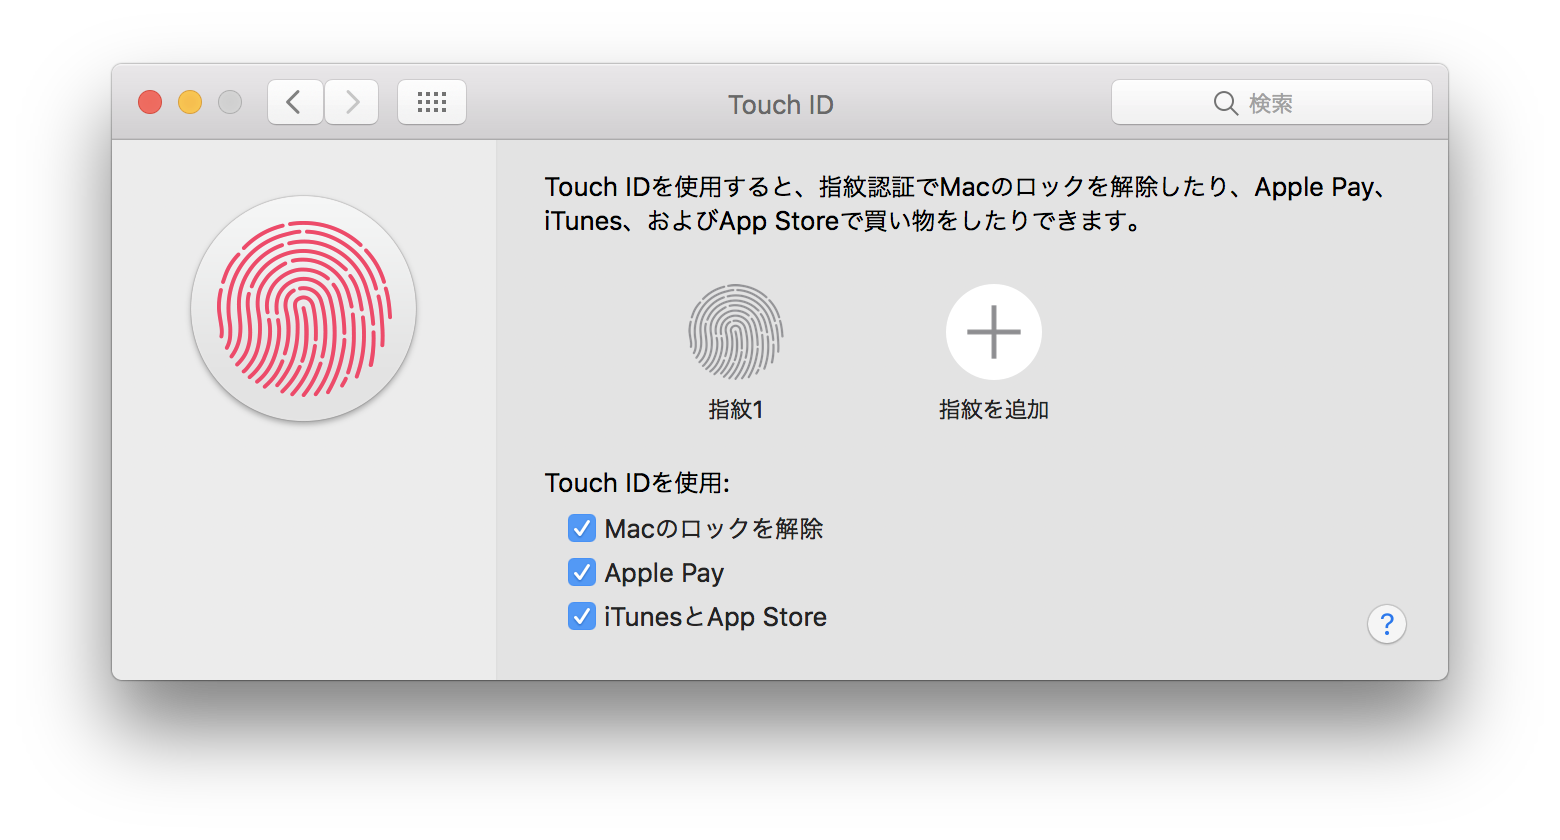 Touch IDの設定画面。Touch IDには指紋を3つまで登録可能だ